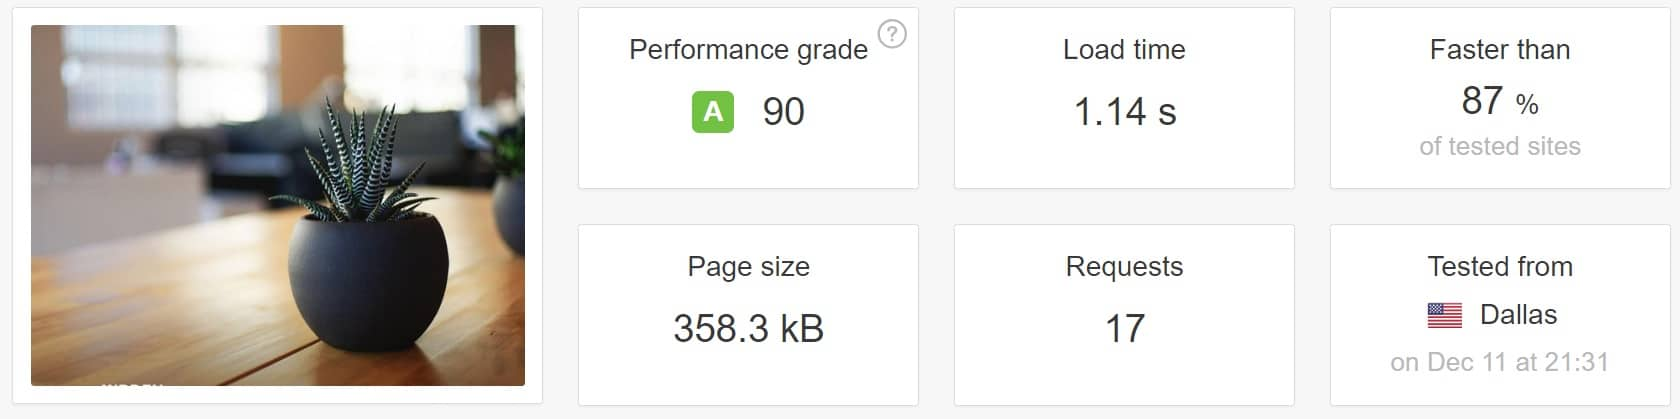 before pagespeed optimizations speed test